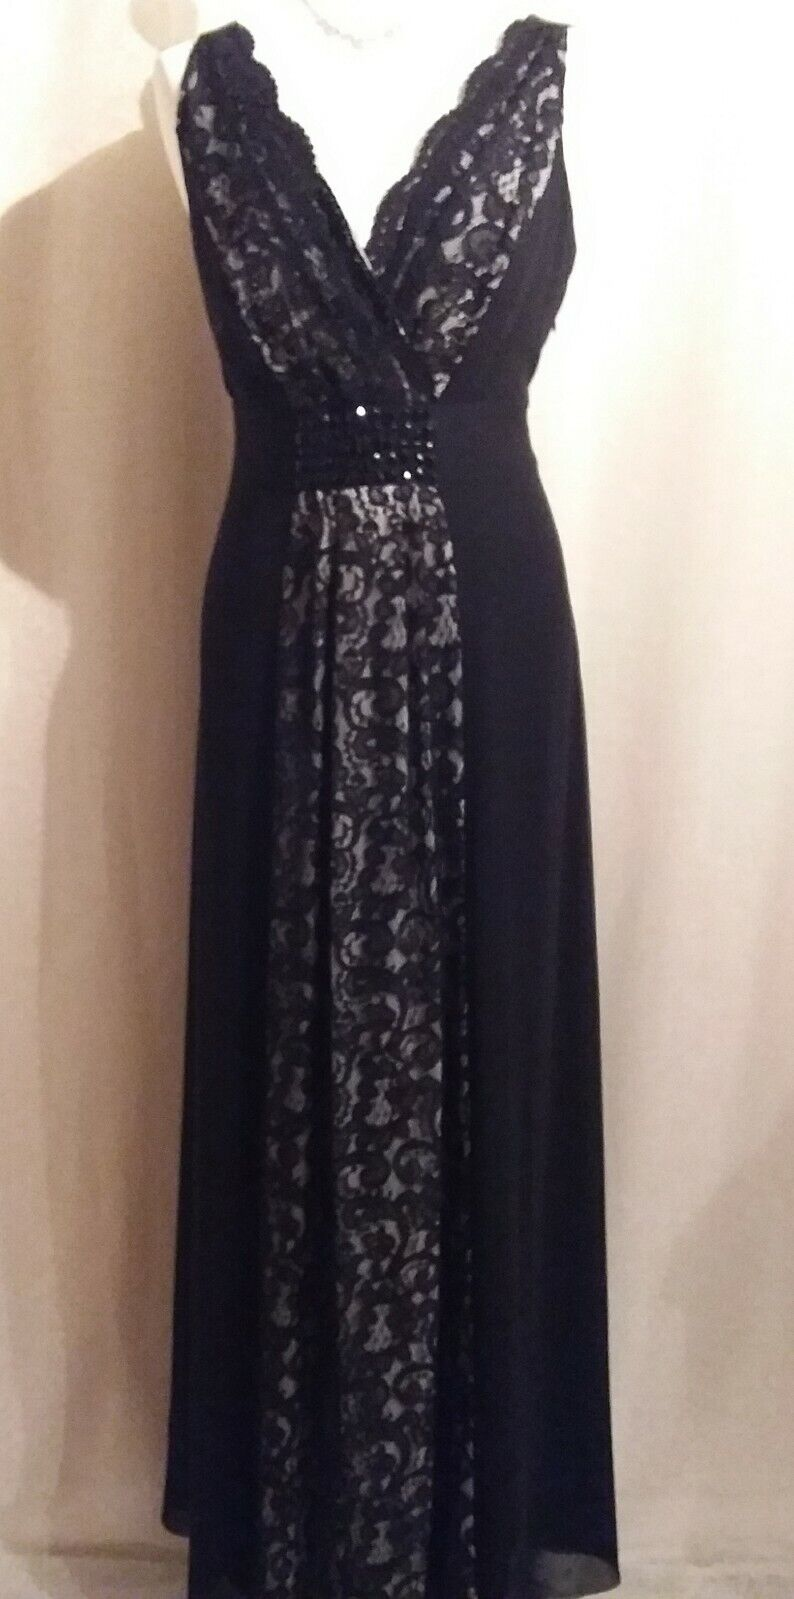 **New With Tags** Jacques Vert long length black evening dress, size 12